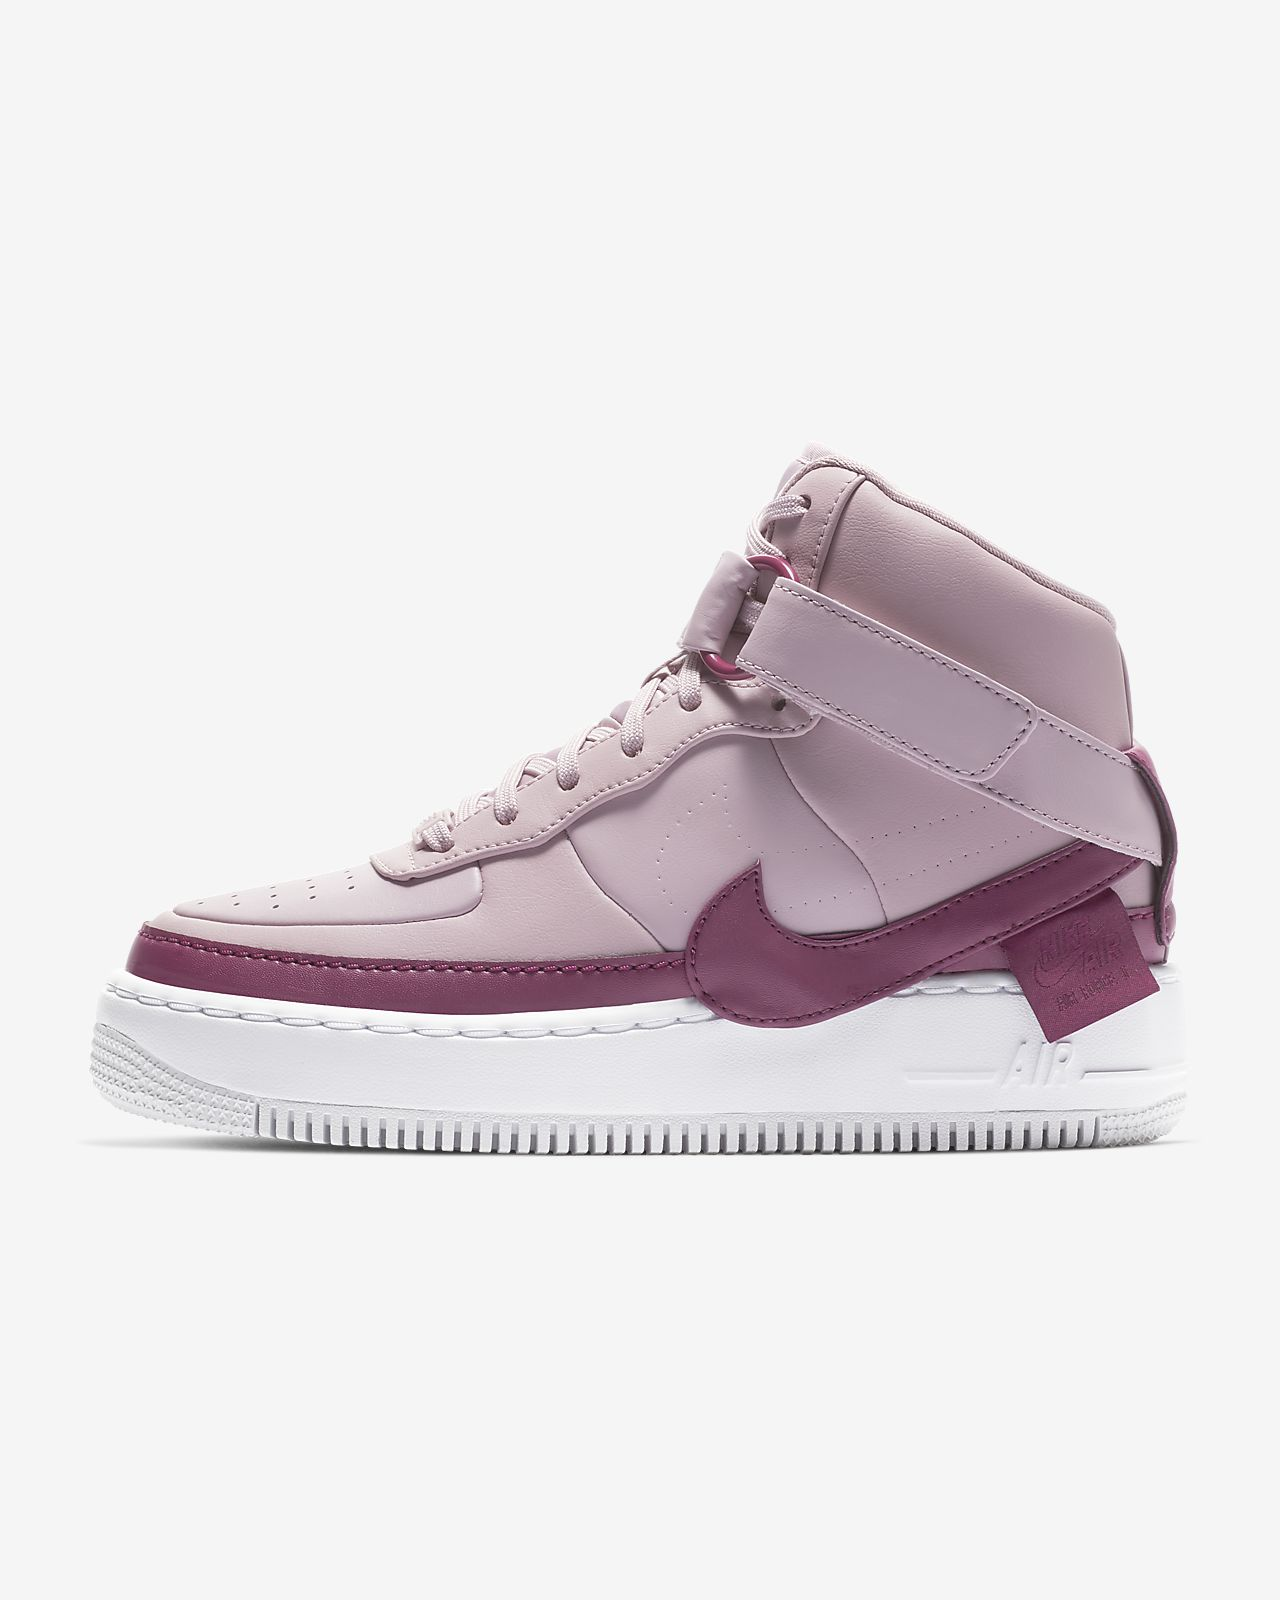 351ac29a7d6dd Nike Air Force 1 Jester High XX Women s Shoe. Nike.com